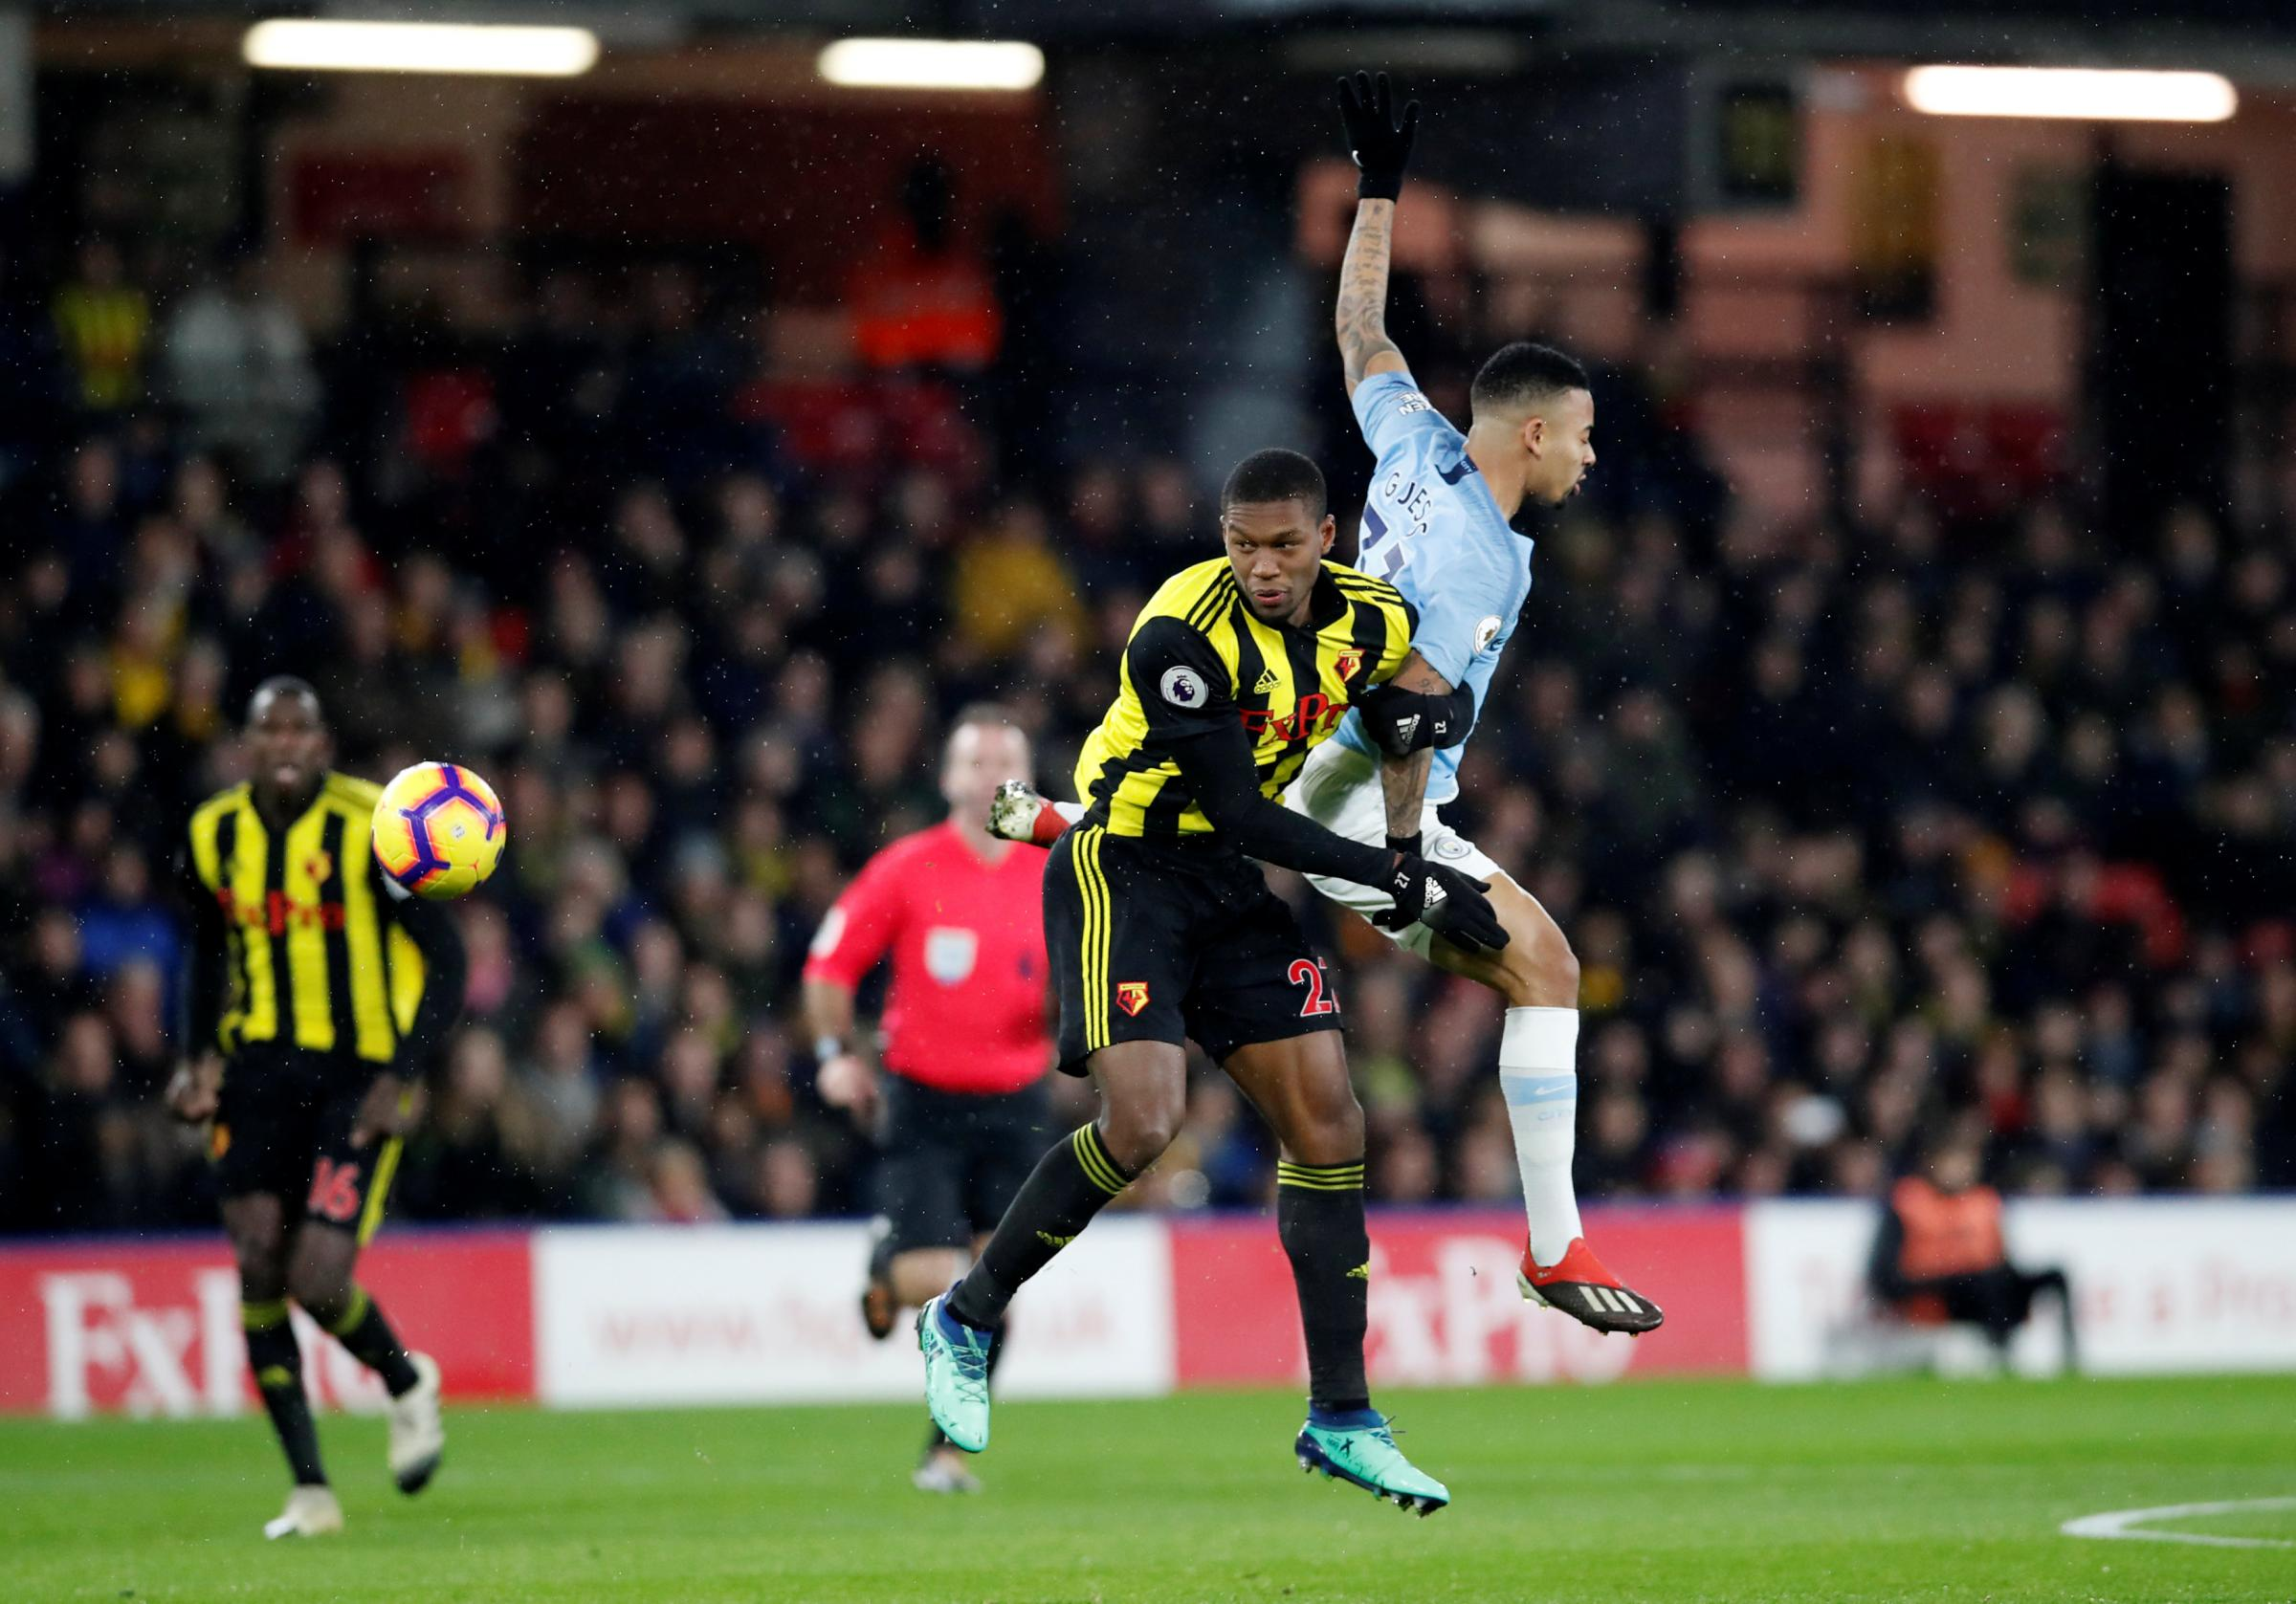 Christian Kabasele in action against Man City. Picture: Action Images